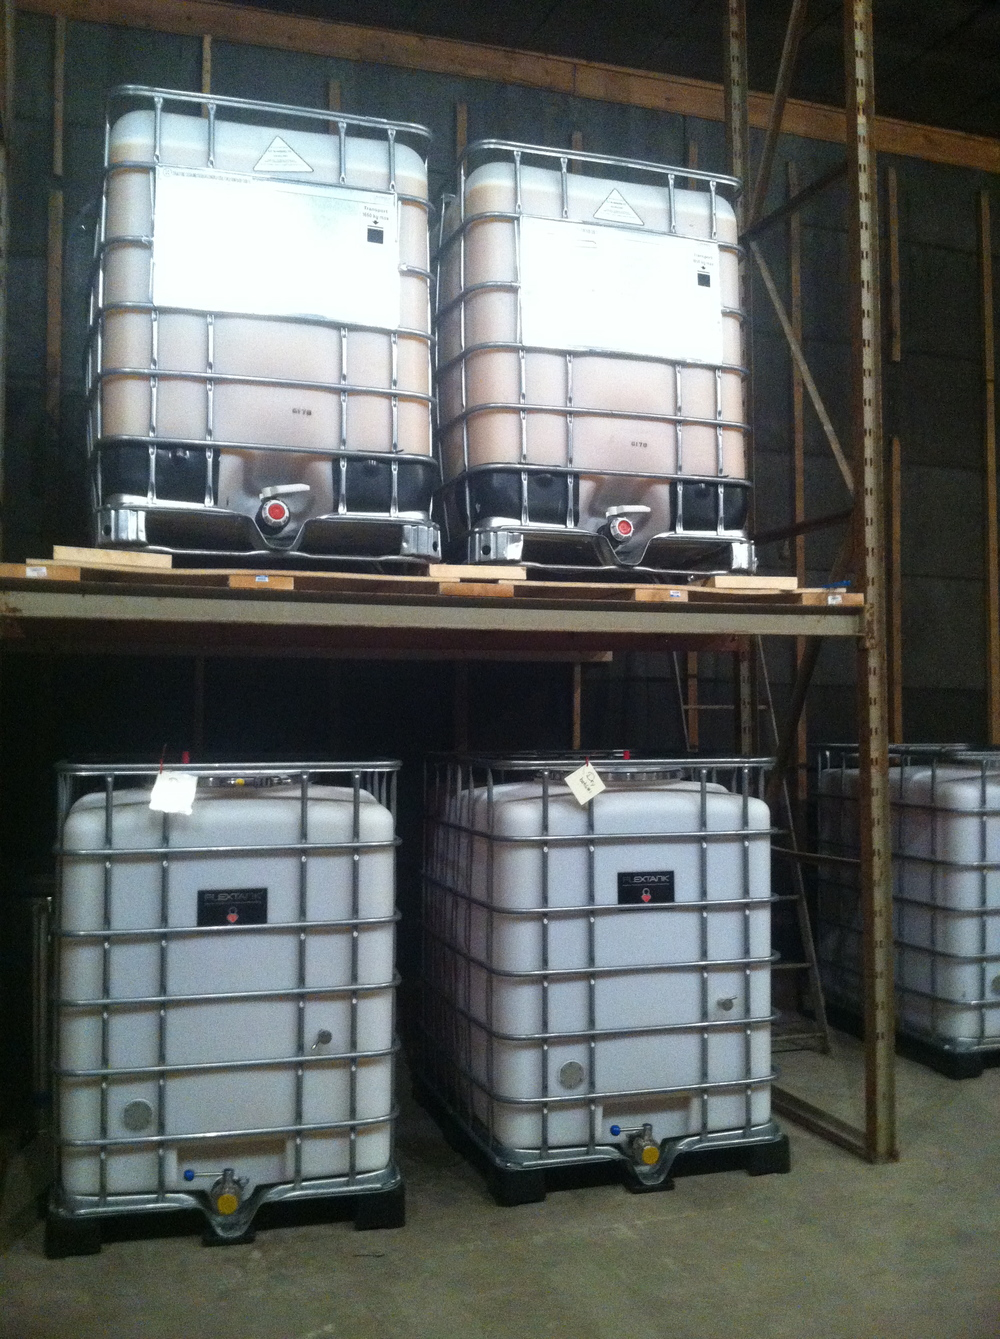 Containers full of fermenting cider.